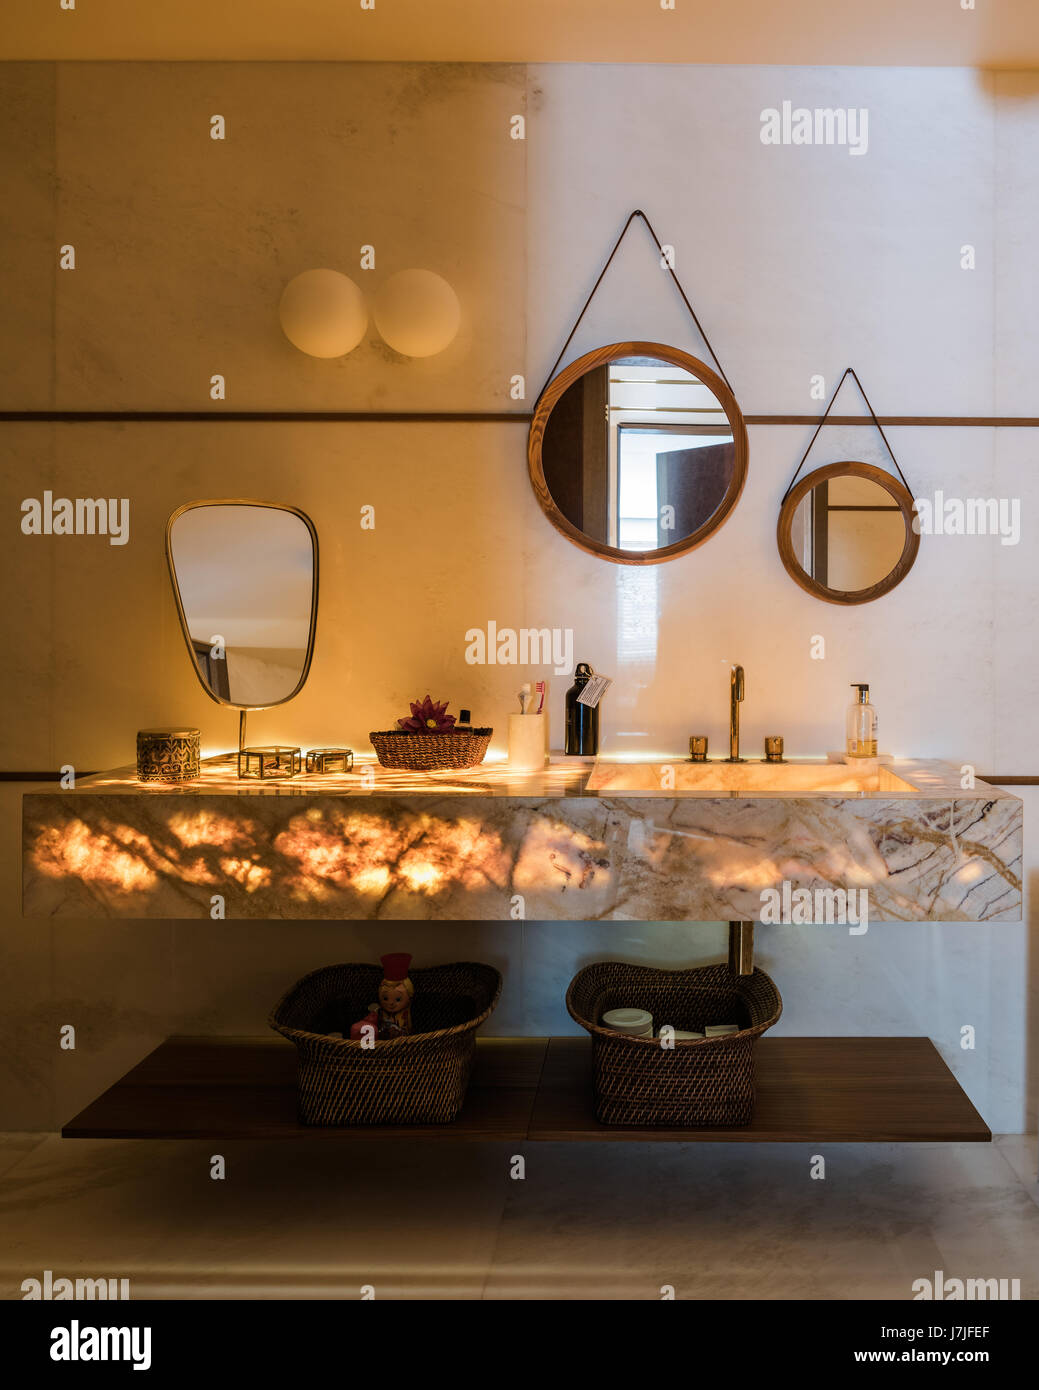 Wood framed mirrors above lit marble wash stand - Stock Image